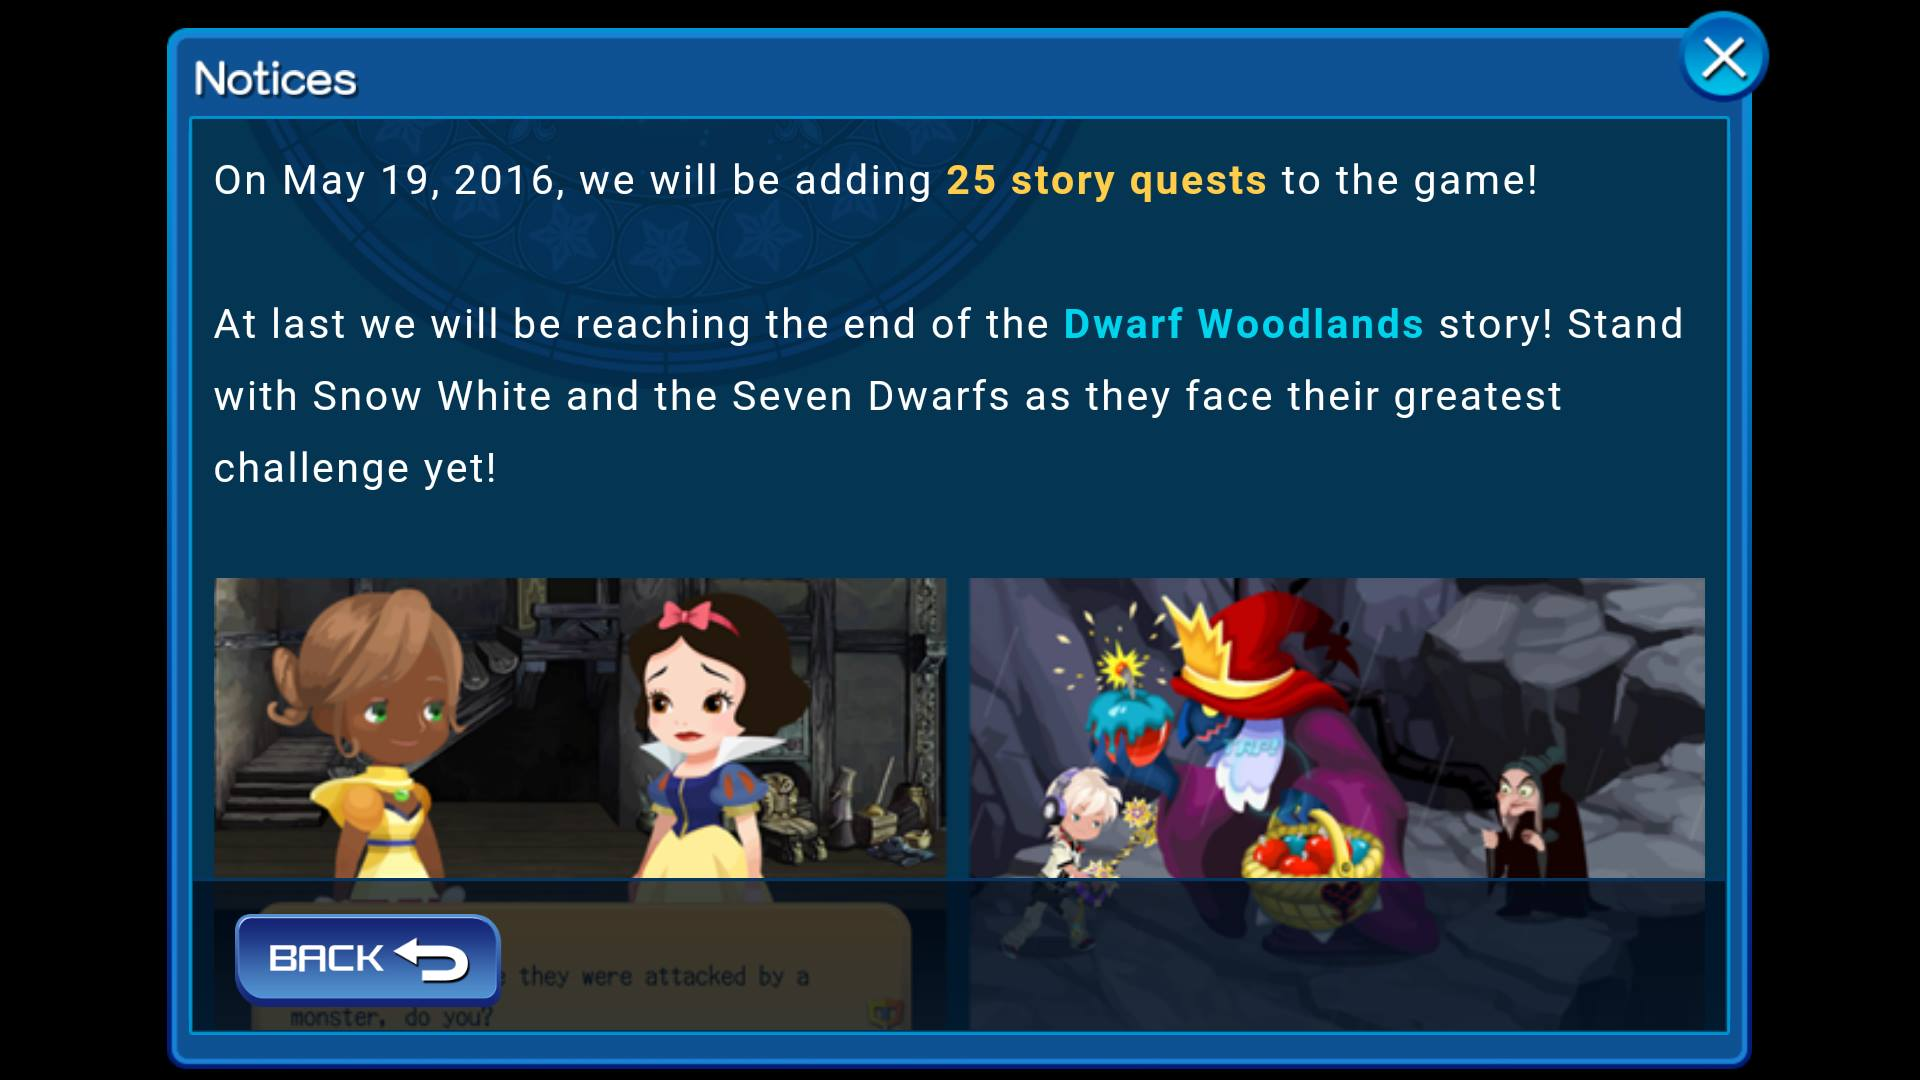 25 New Story Quests to be added to Kingdom Hearts ...